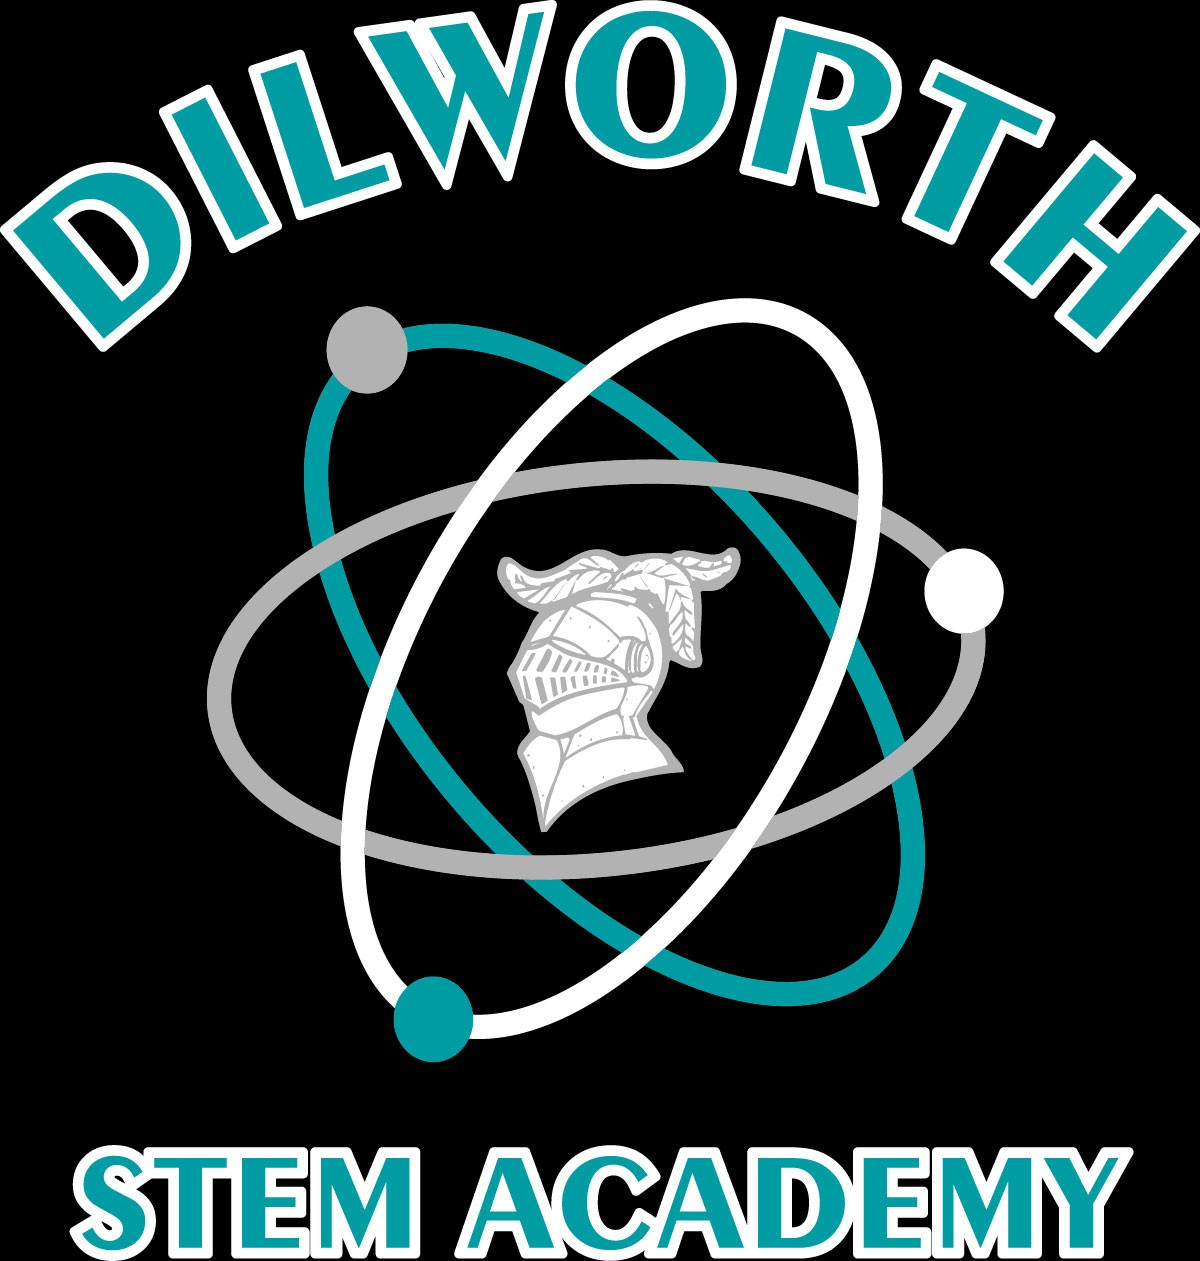 Copy Of Dilworth